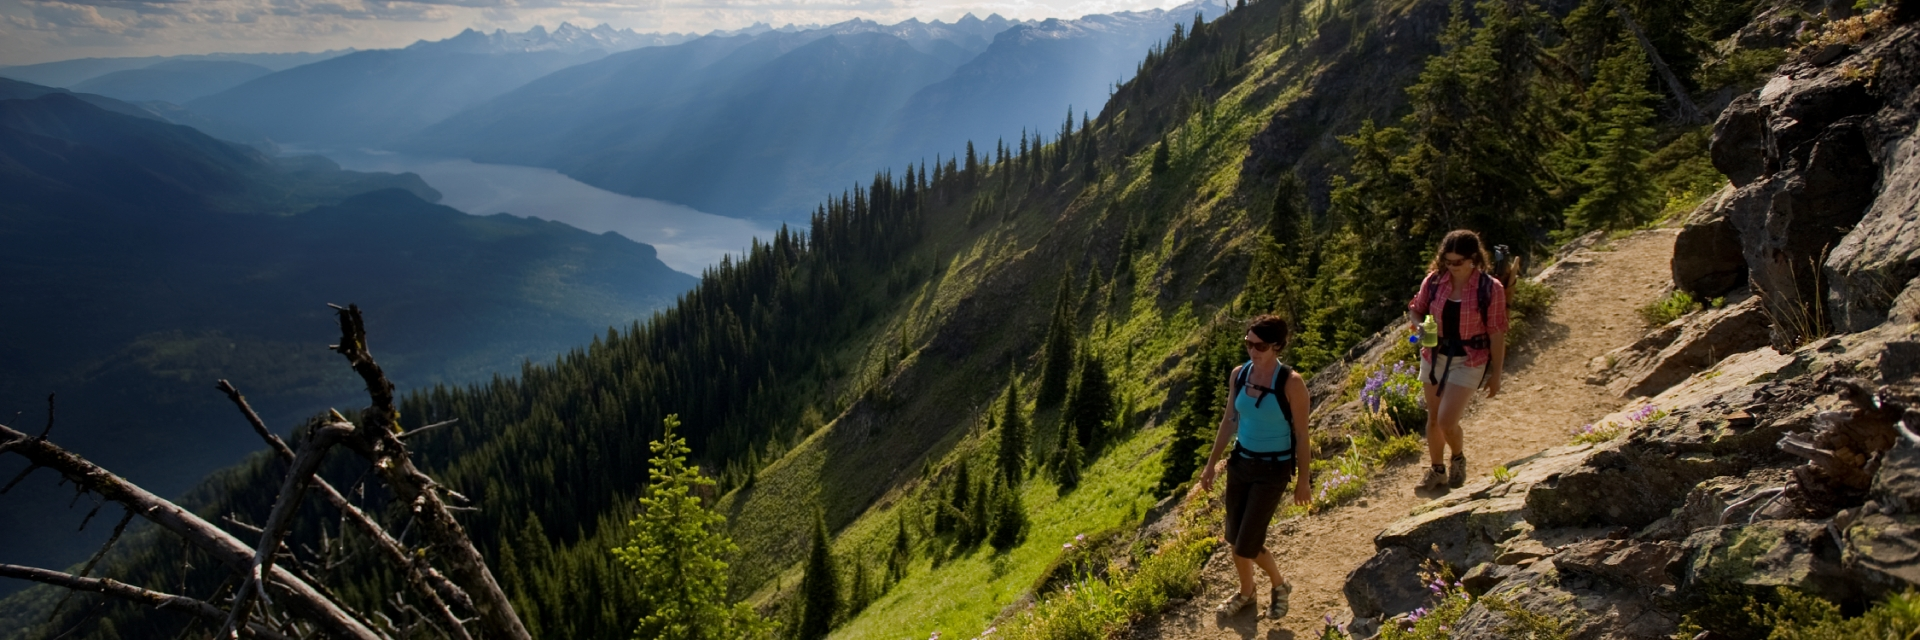 Two people hiking in British Columbia.